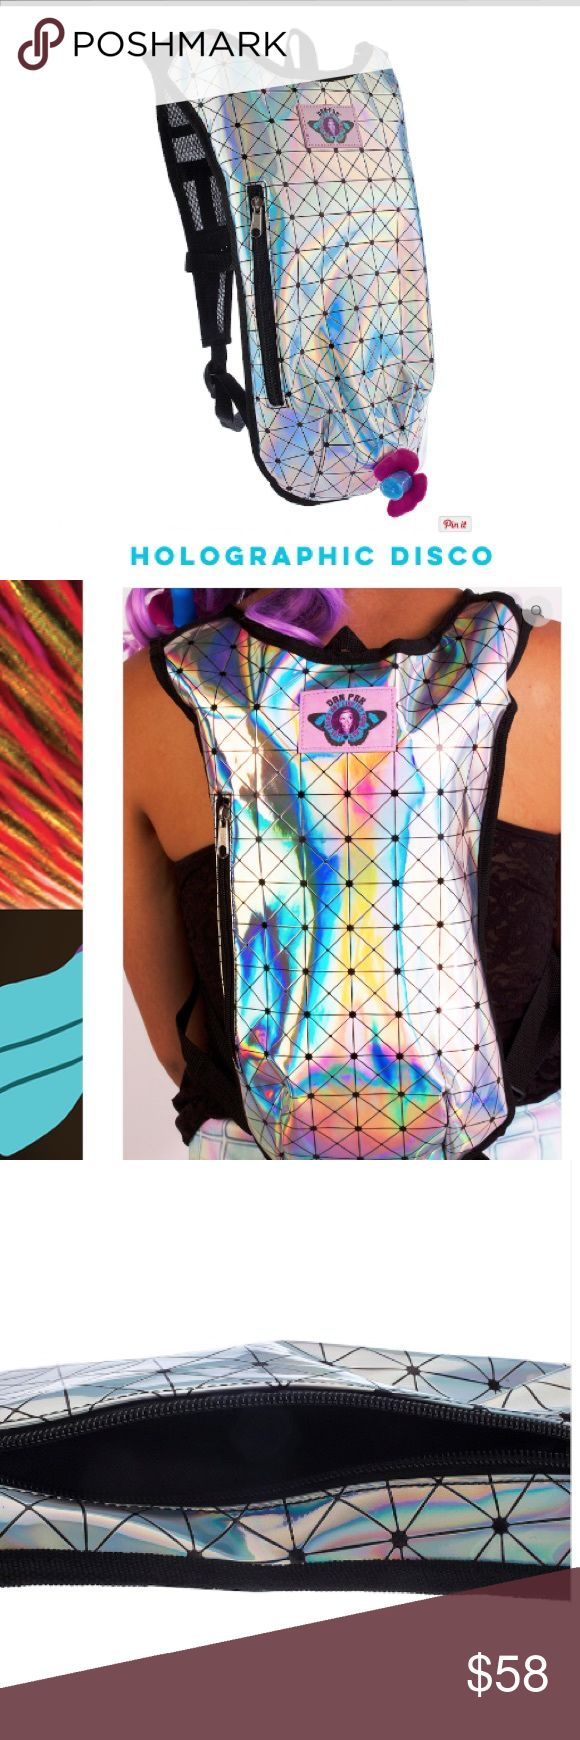 """Camelback hologram holographic silver Dan Pak Dan-Pak unique """"disco"""" camelbak in holographic silver. Used only once, great condition, comes with bladder inside. Cute unique water pack ! Has a zipper pocket on the front side and also on the back. Great for festivals , events , raves, Coachella etc. tags: unif dollskill iheartraves black milk lip service nasty gal mi gente little black diamond we'll rave wonderland j valentine hot topic vibedration spray ground Bags Backpacks"""